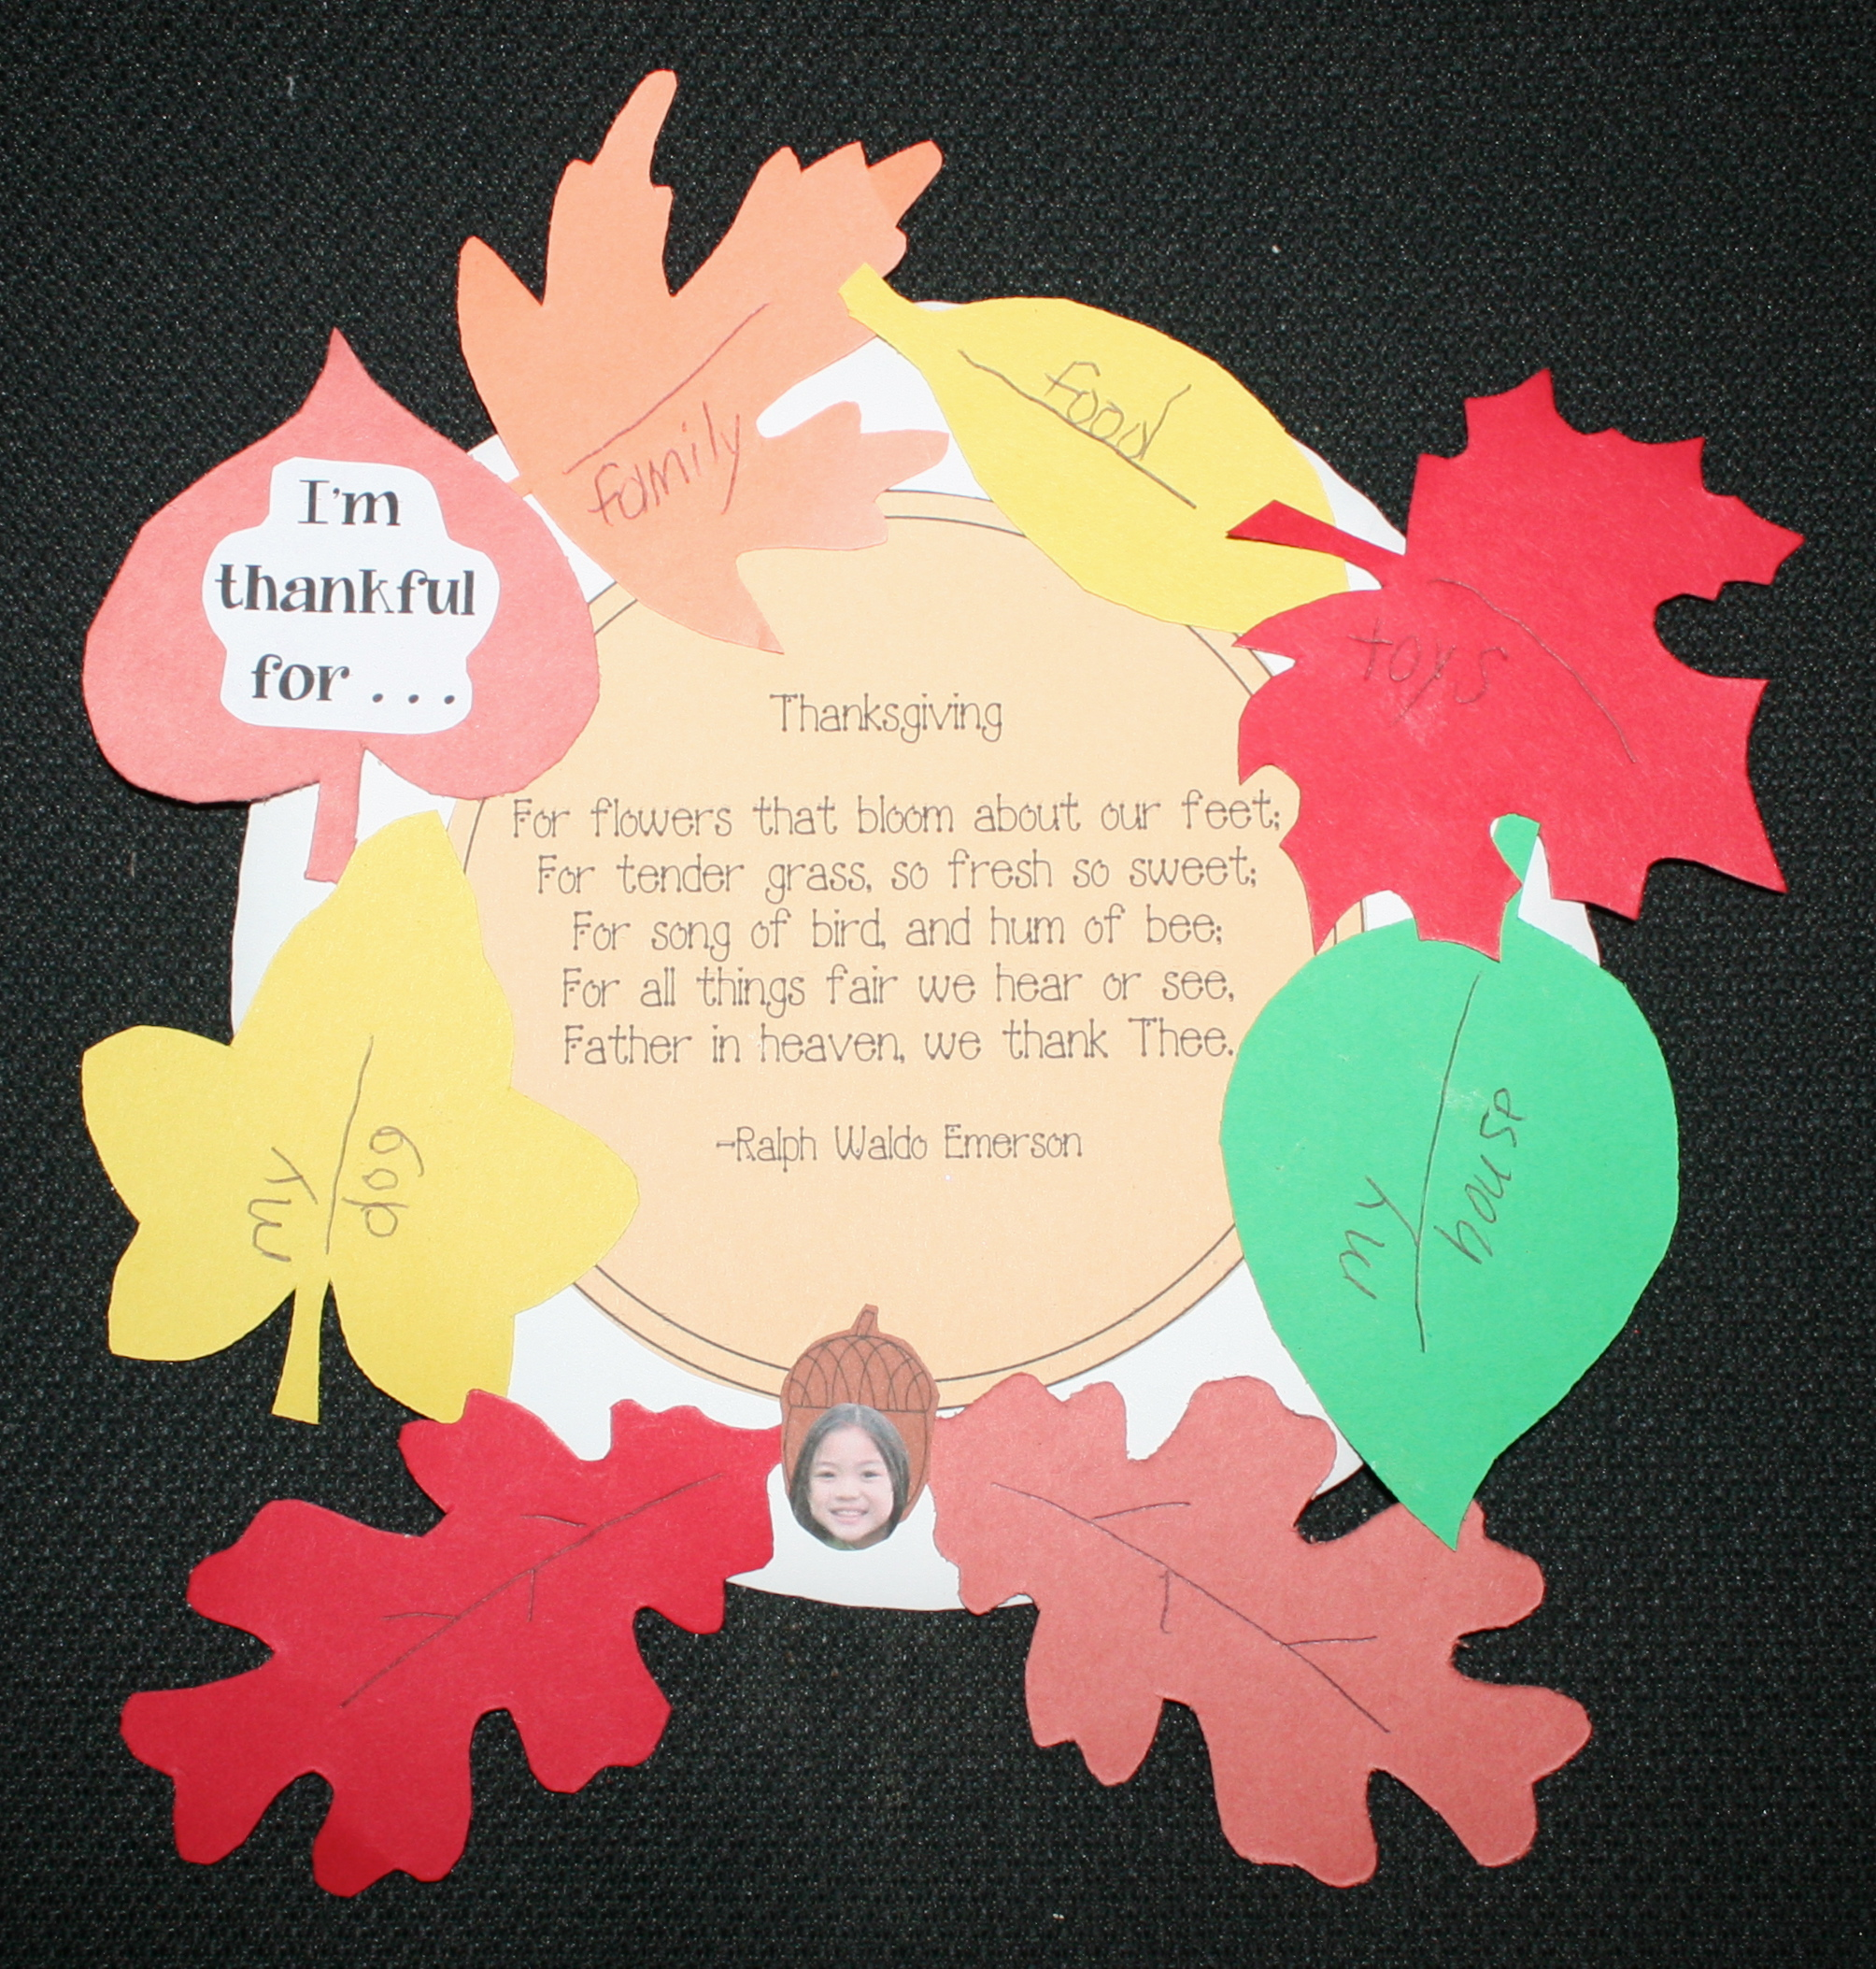 acorn crafts, thanksgiving crafts, acorn activities, thanksgiving activities, november bulletin boards, fall bulletin boards, thanksgiving bulletin boards, I'm thankful for writing prompts, thanksgiving wreath, thankful wreath, thankful tree